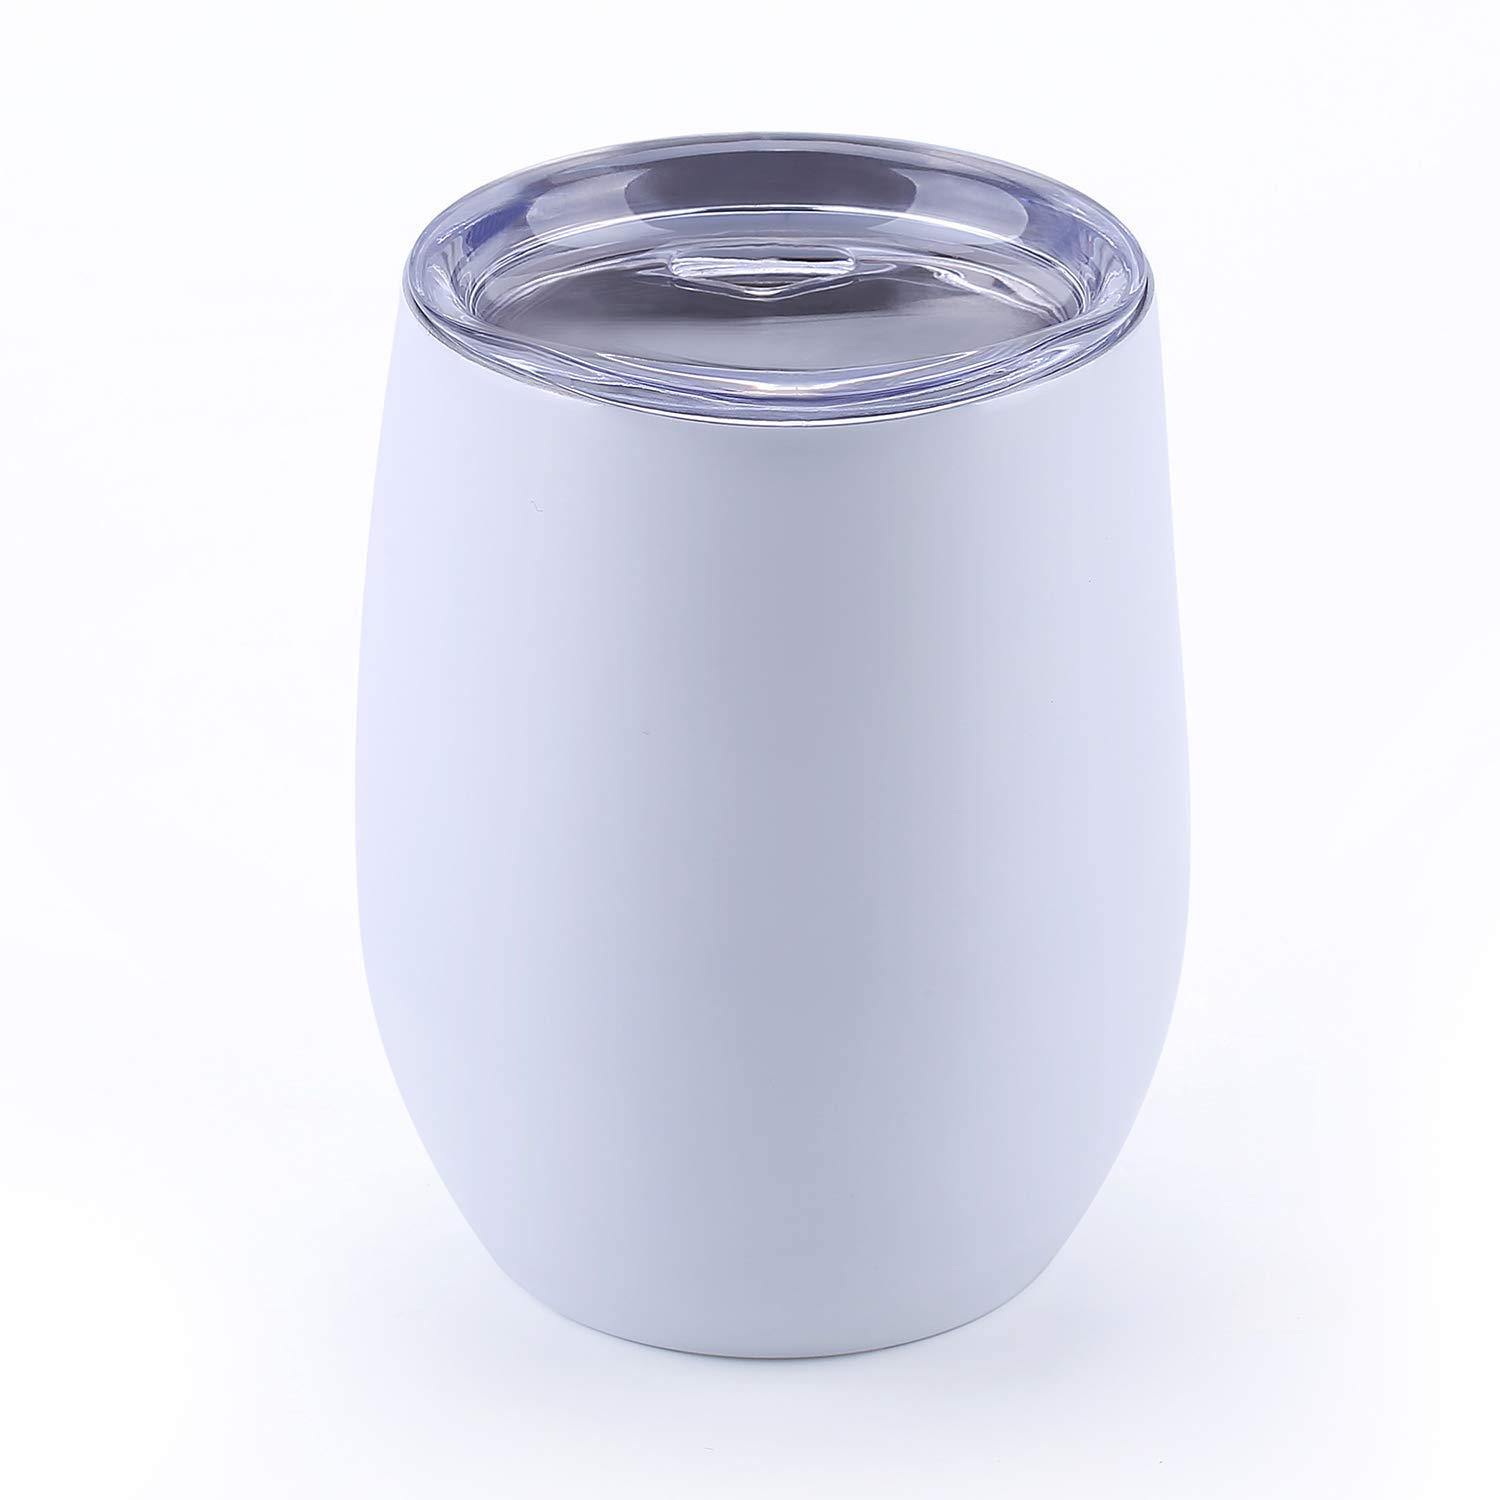 WBRWP 12oz travel wine tumbler with lid : double-vacuum insulated food grade stainless steel-White